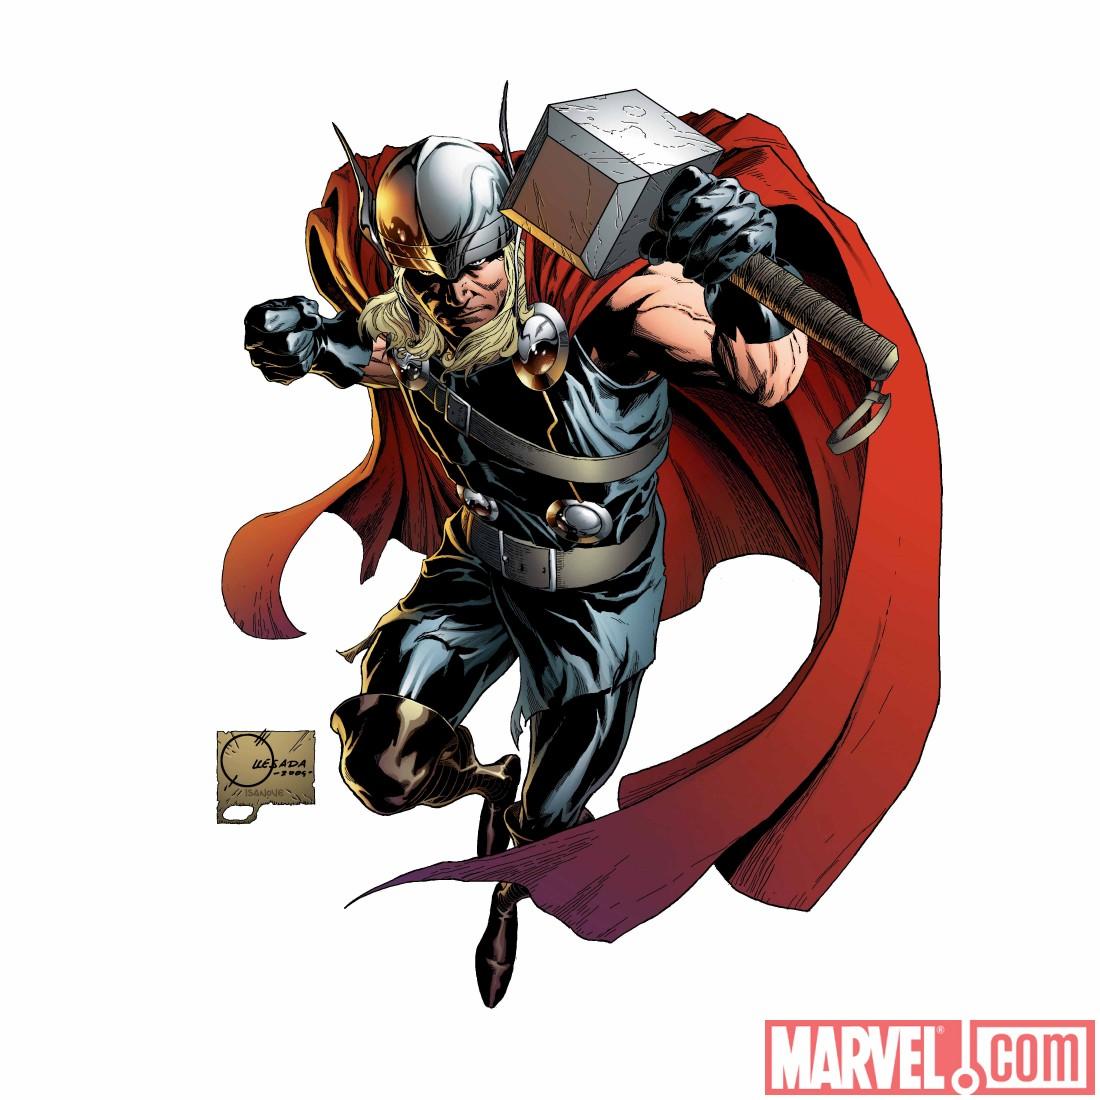 THOR_615_covQ New Look at Matt Fraction and Pasqual Ferry's THOR debut